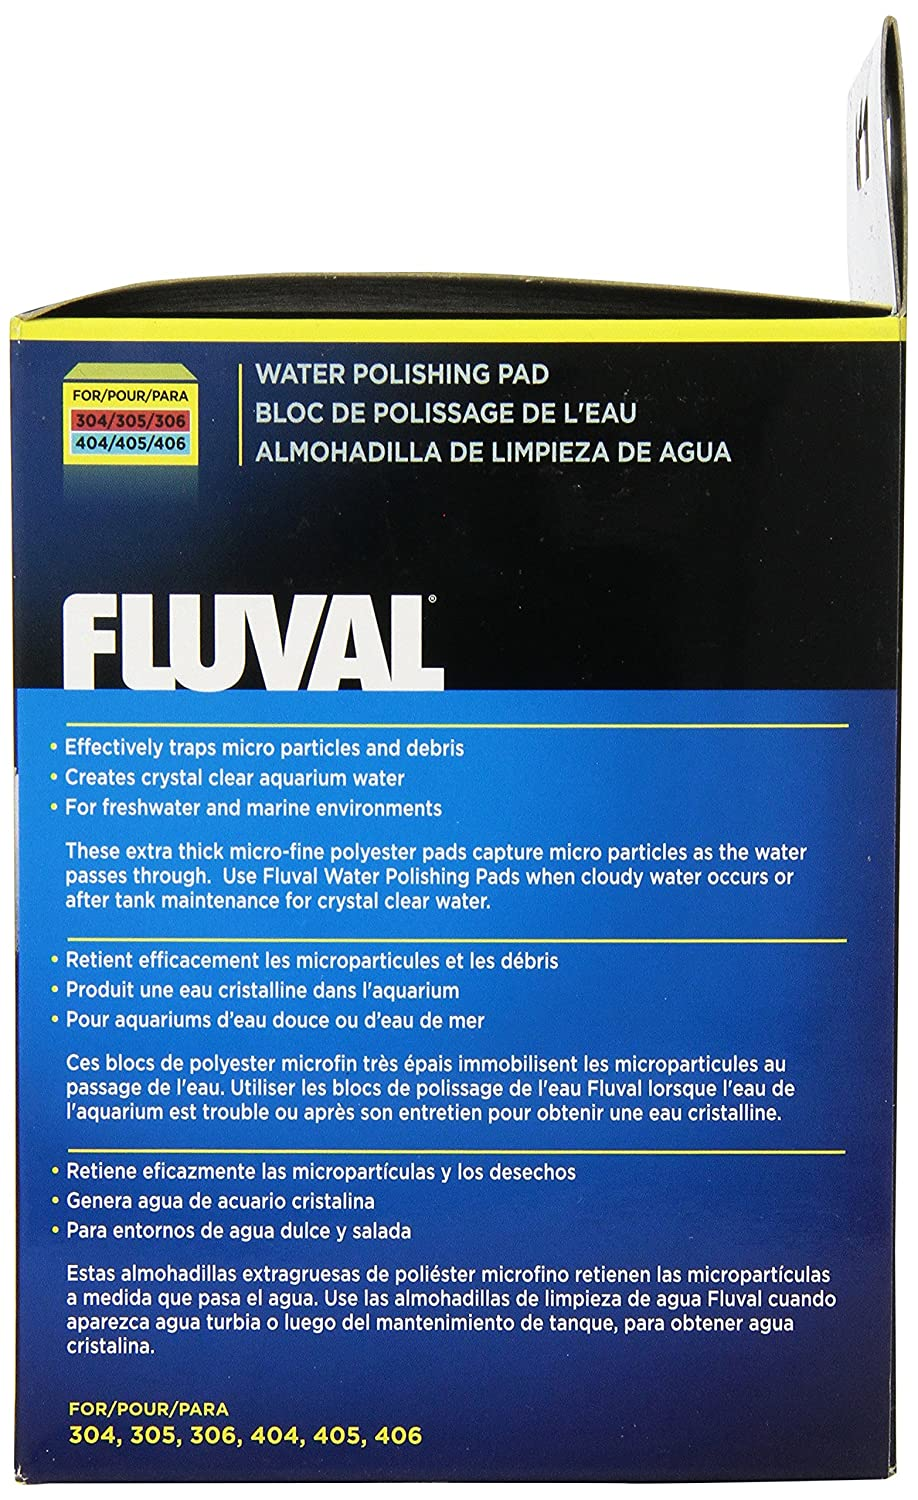 fluval water polishing pad for 305 406 6 pieces amazon co uk pet